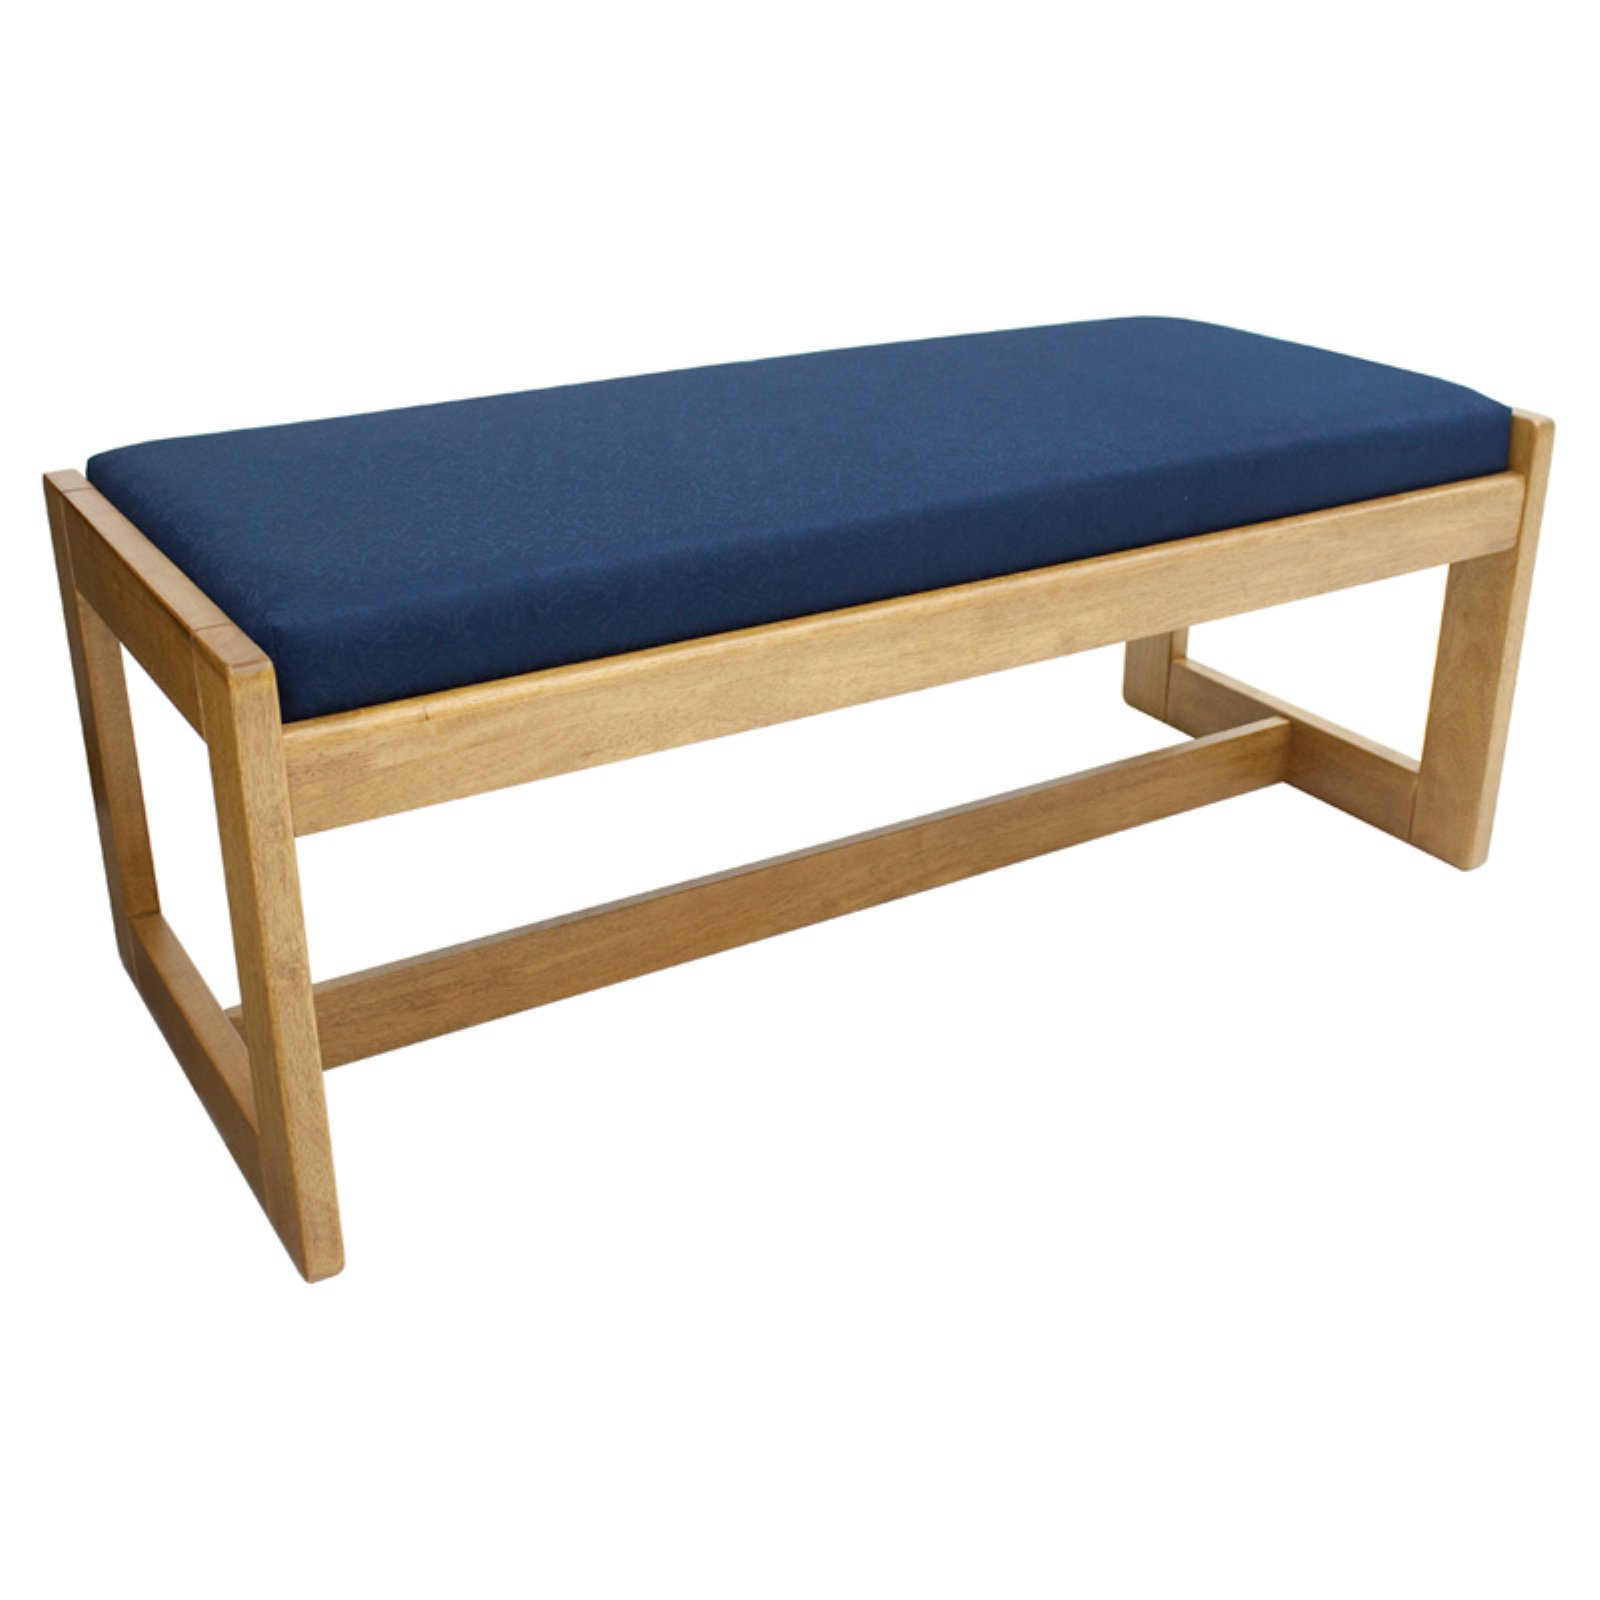 Belcino Medium Oak Double Seat Bench, Multiple Colors